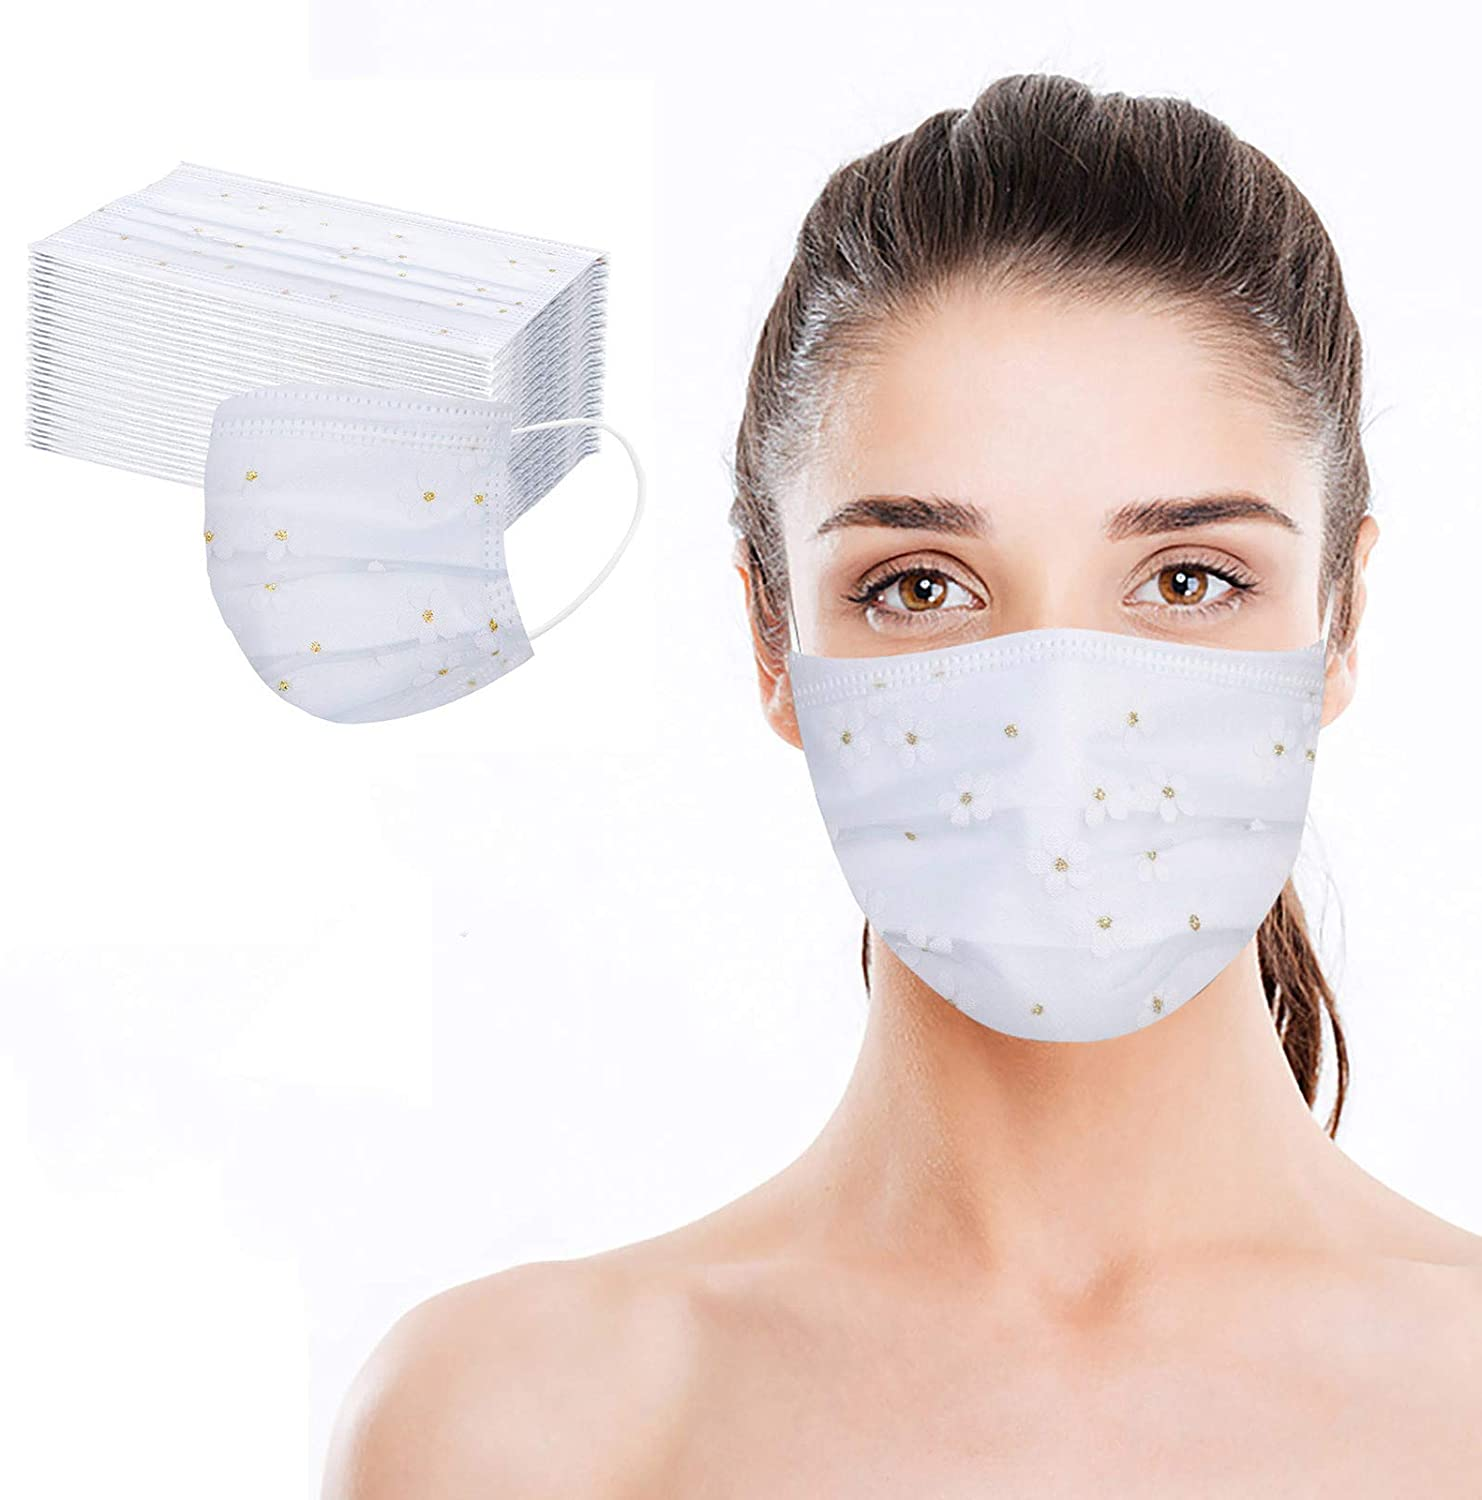 Celendi - 4-Layer Disposable Safety Face_Masks, Unique Net Yarn Designed, Non-Woven Thick and Breathable with Comfortable Elastic Earloop, Mouth and Nose Protection, Adults Size (30 Pcs)